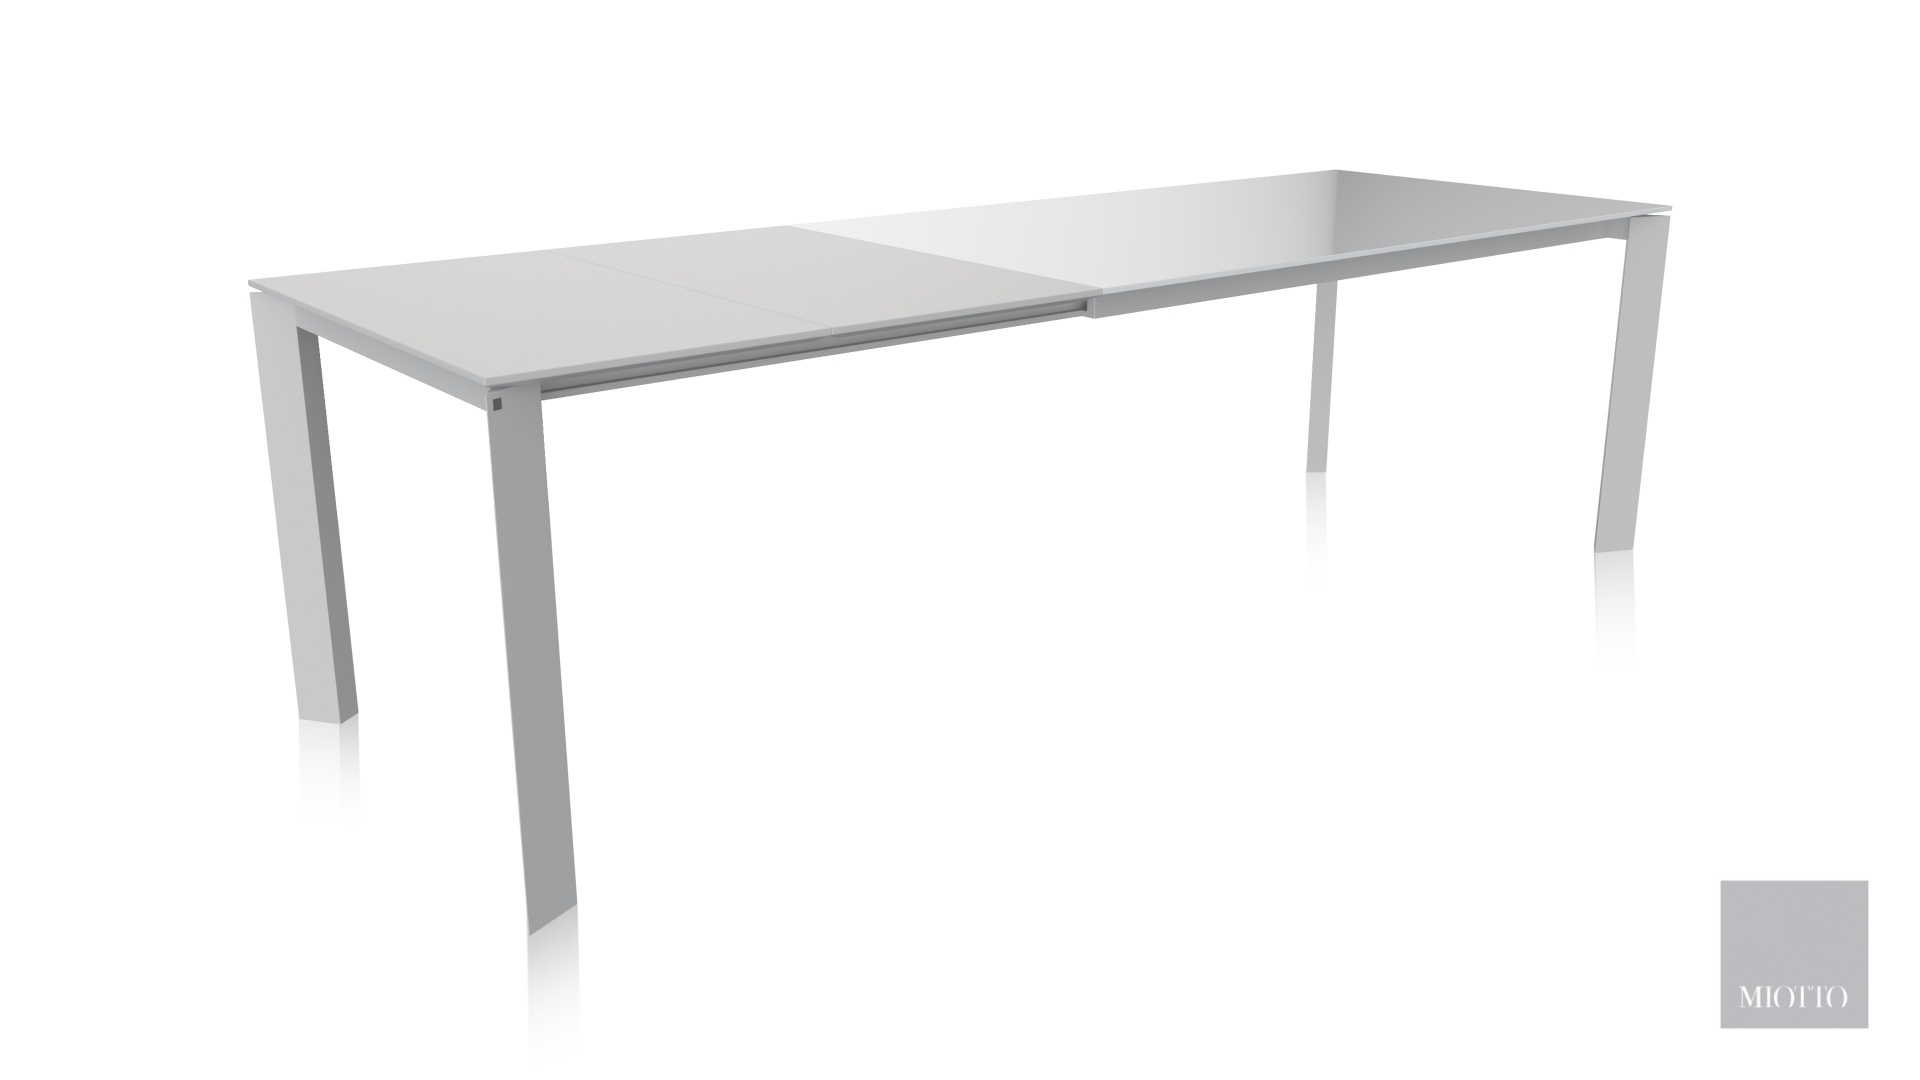 miotto_adotto DT T white open3 miotto dining table